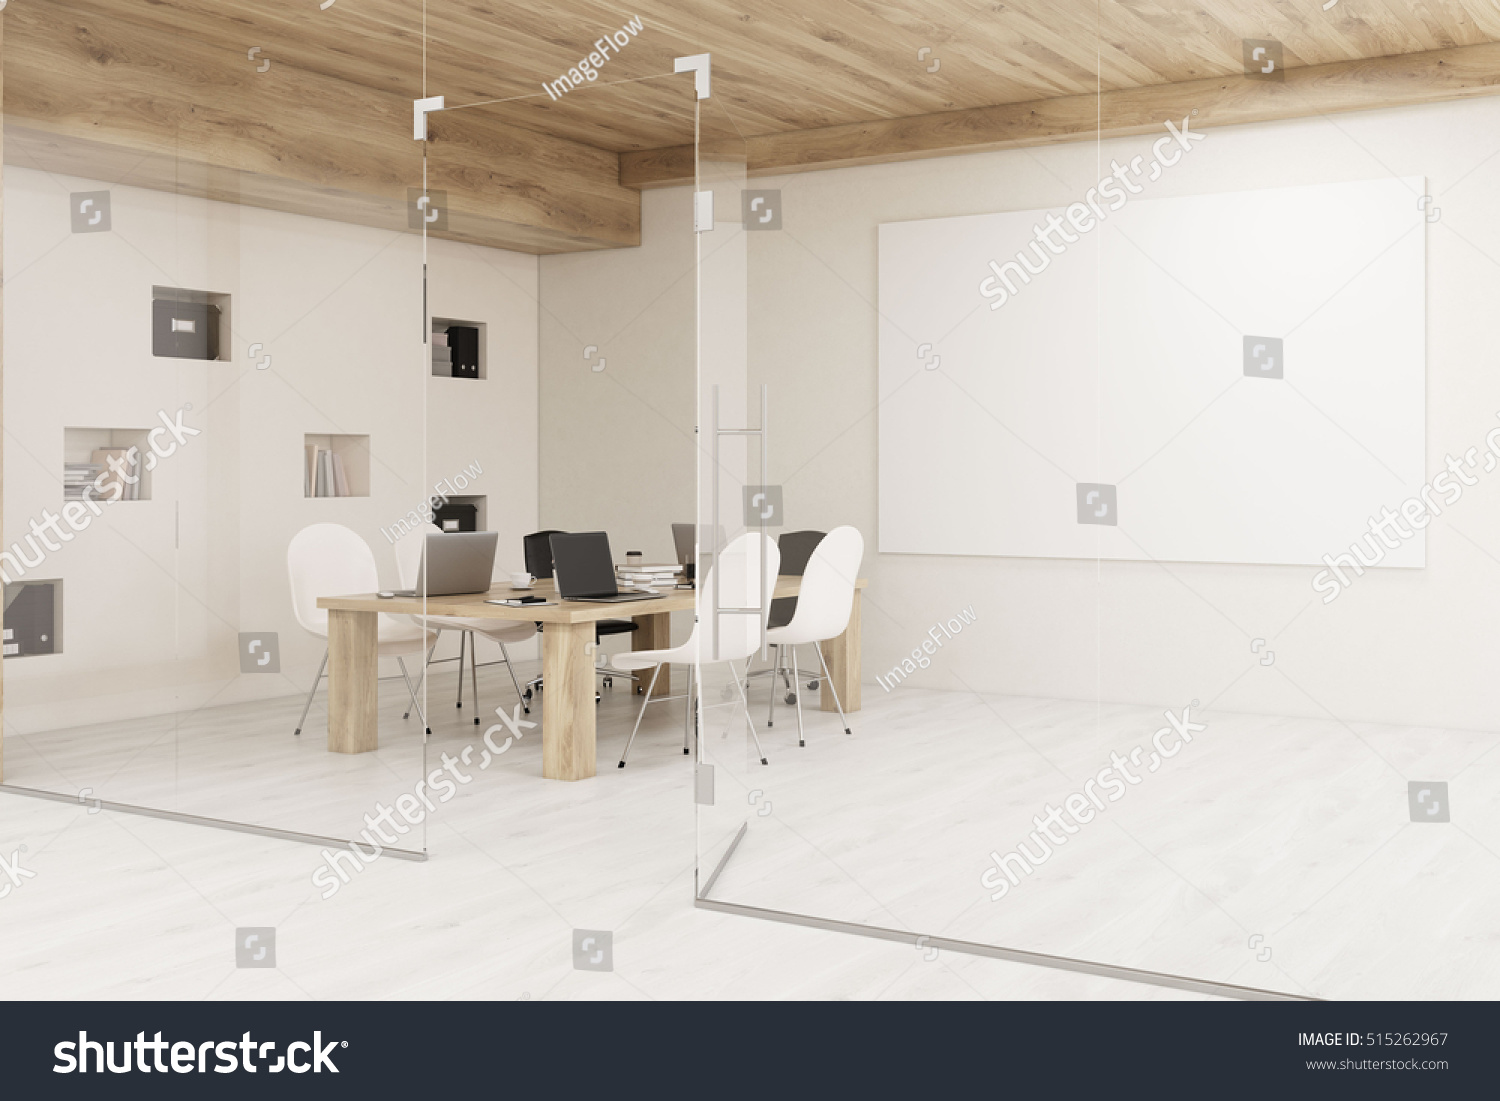 Conference room with glass walls horizontal poster and a wooden ceiling Concept of modern interior design 3D rendering Mock up